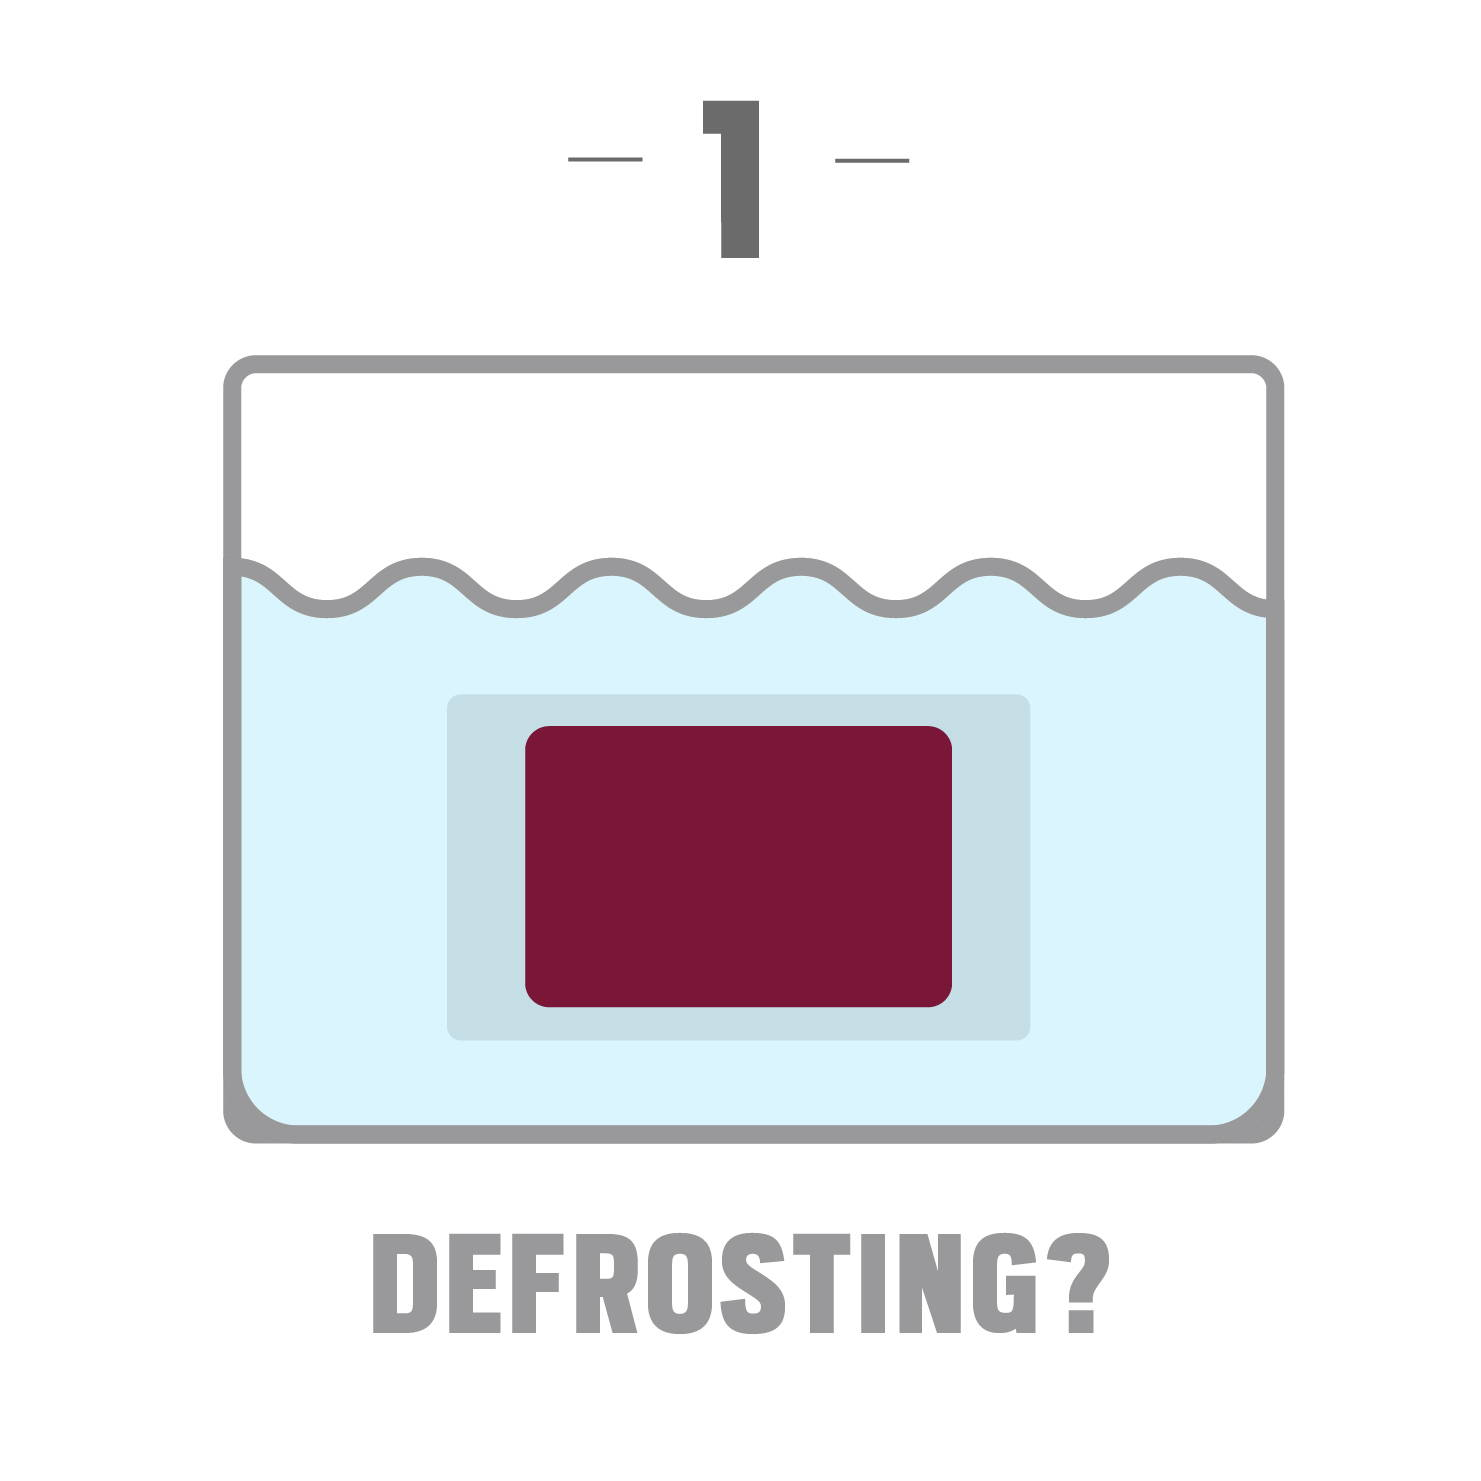 Defrosting? Submerge ground beef into water